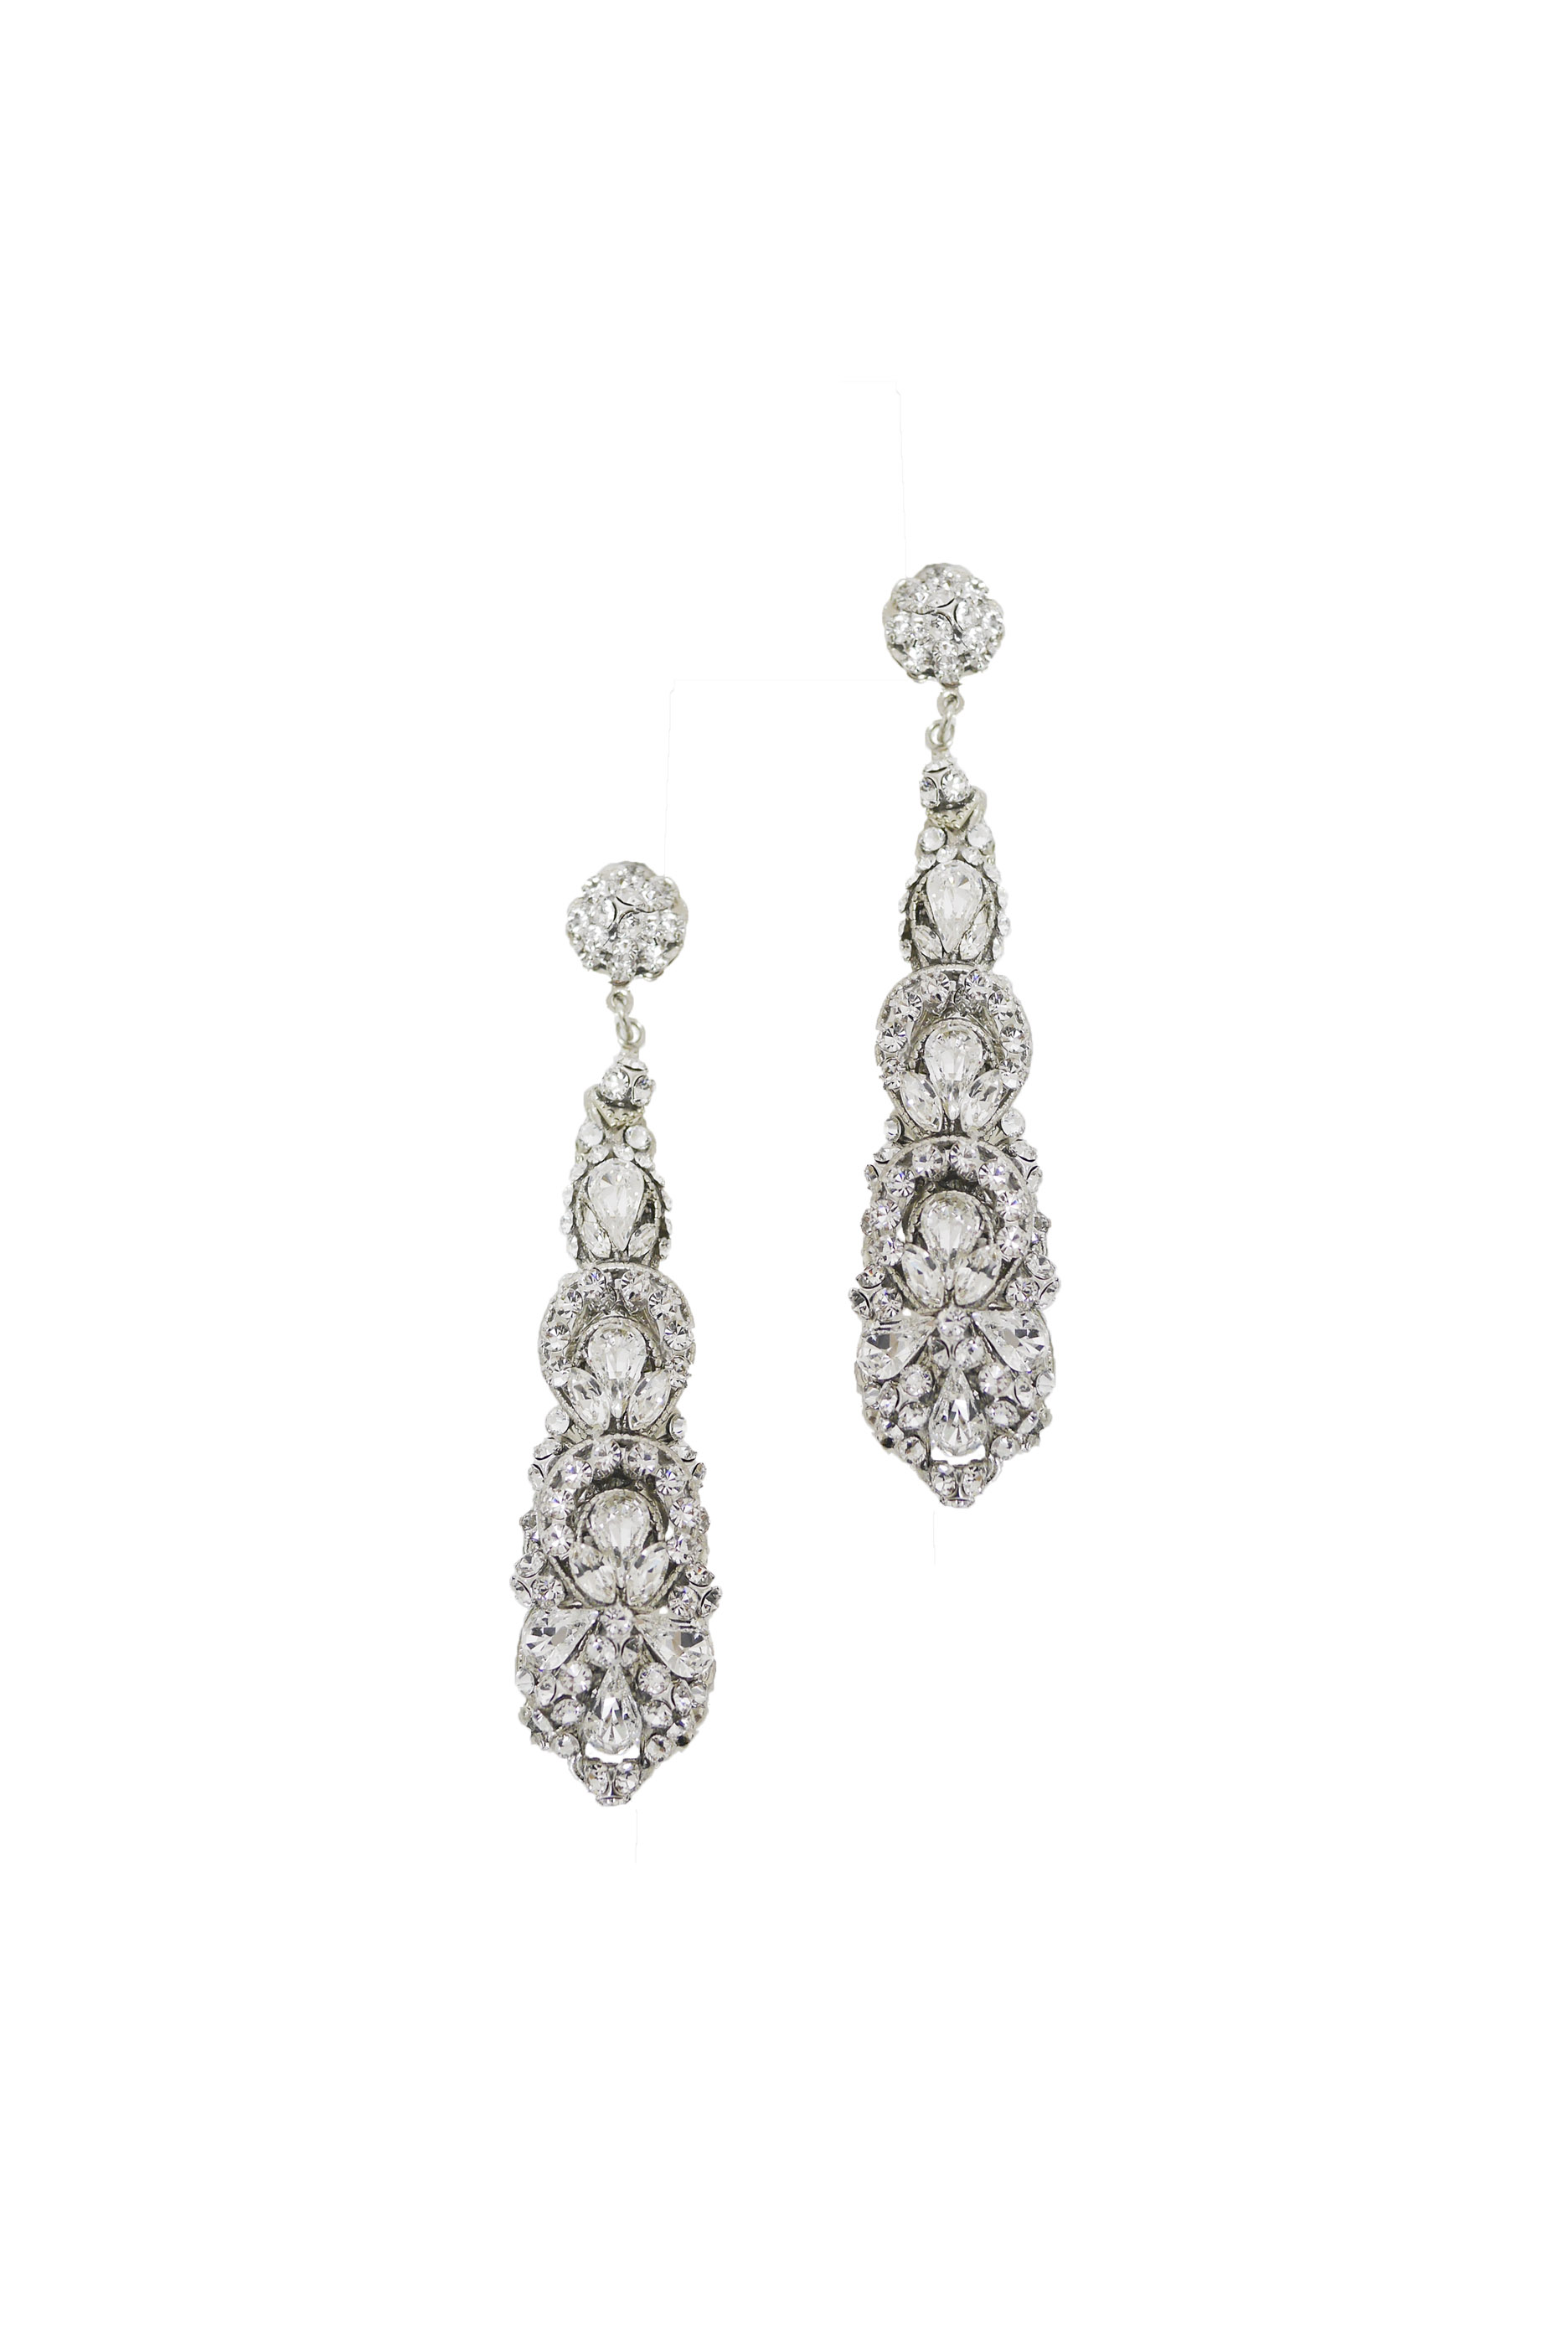 [RENTAL][Madelyn Earrings Long]by MariaElena